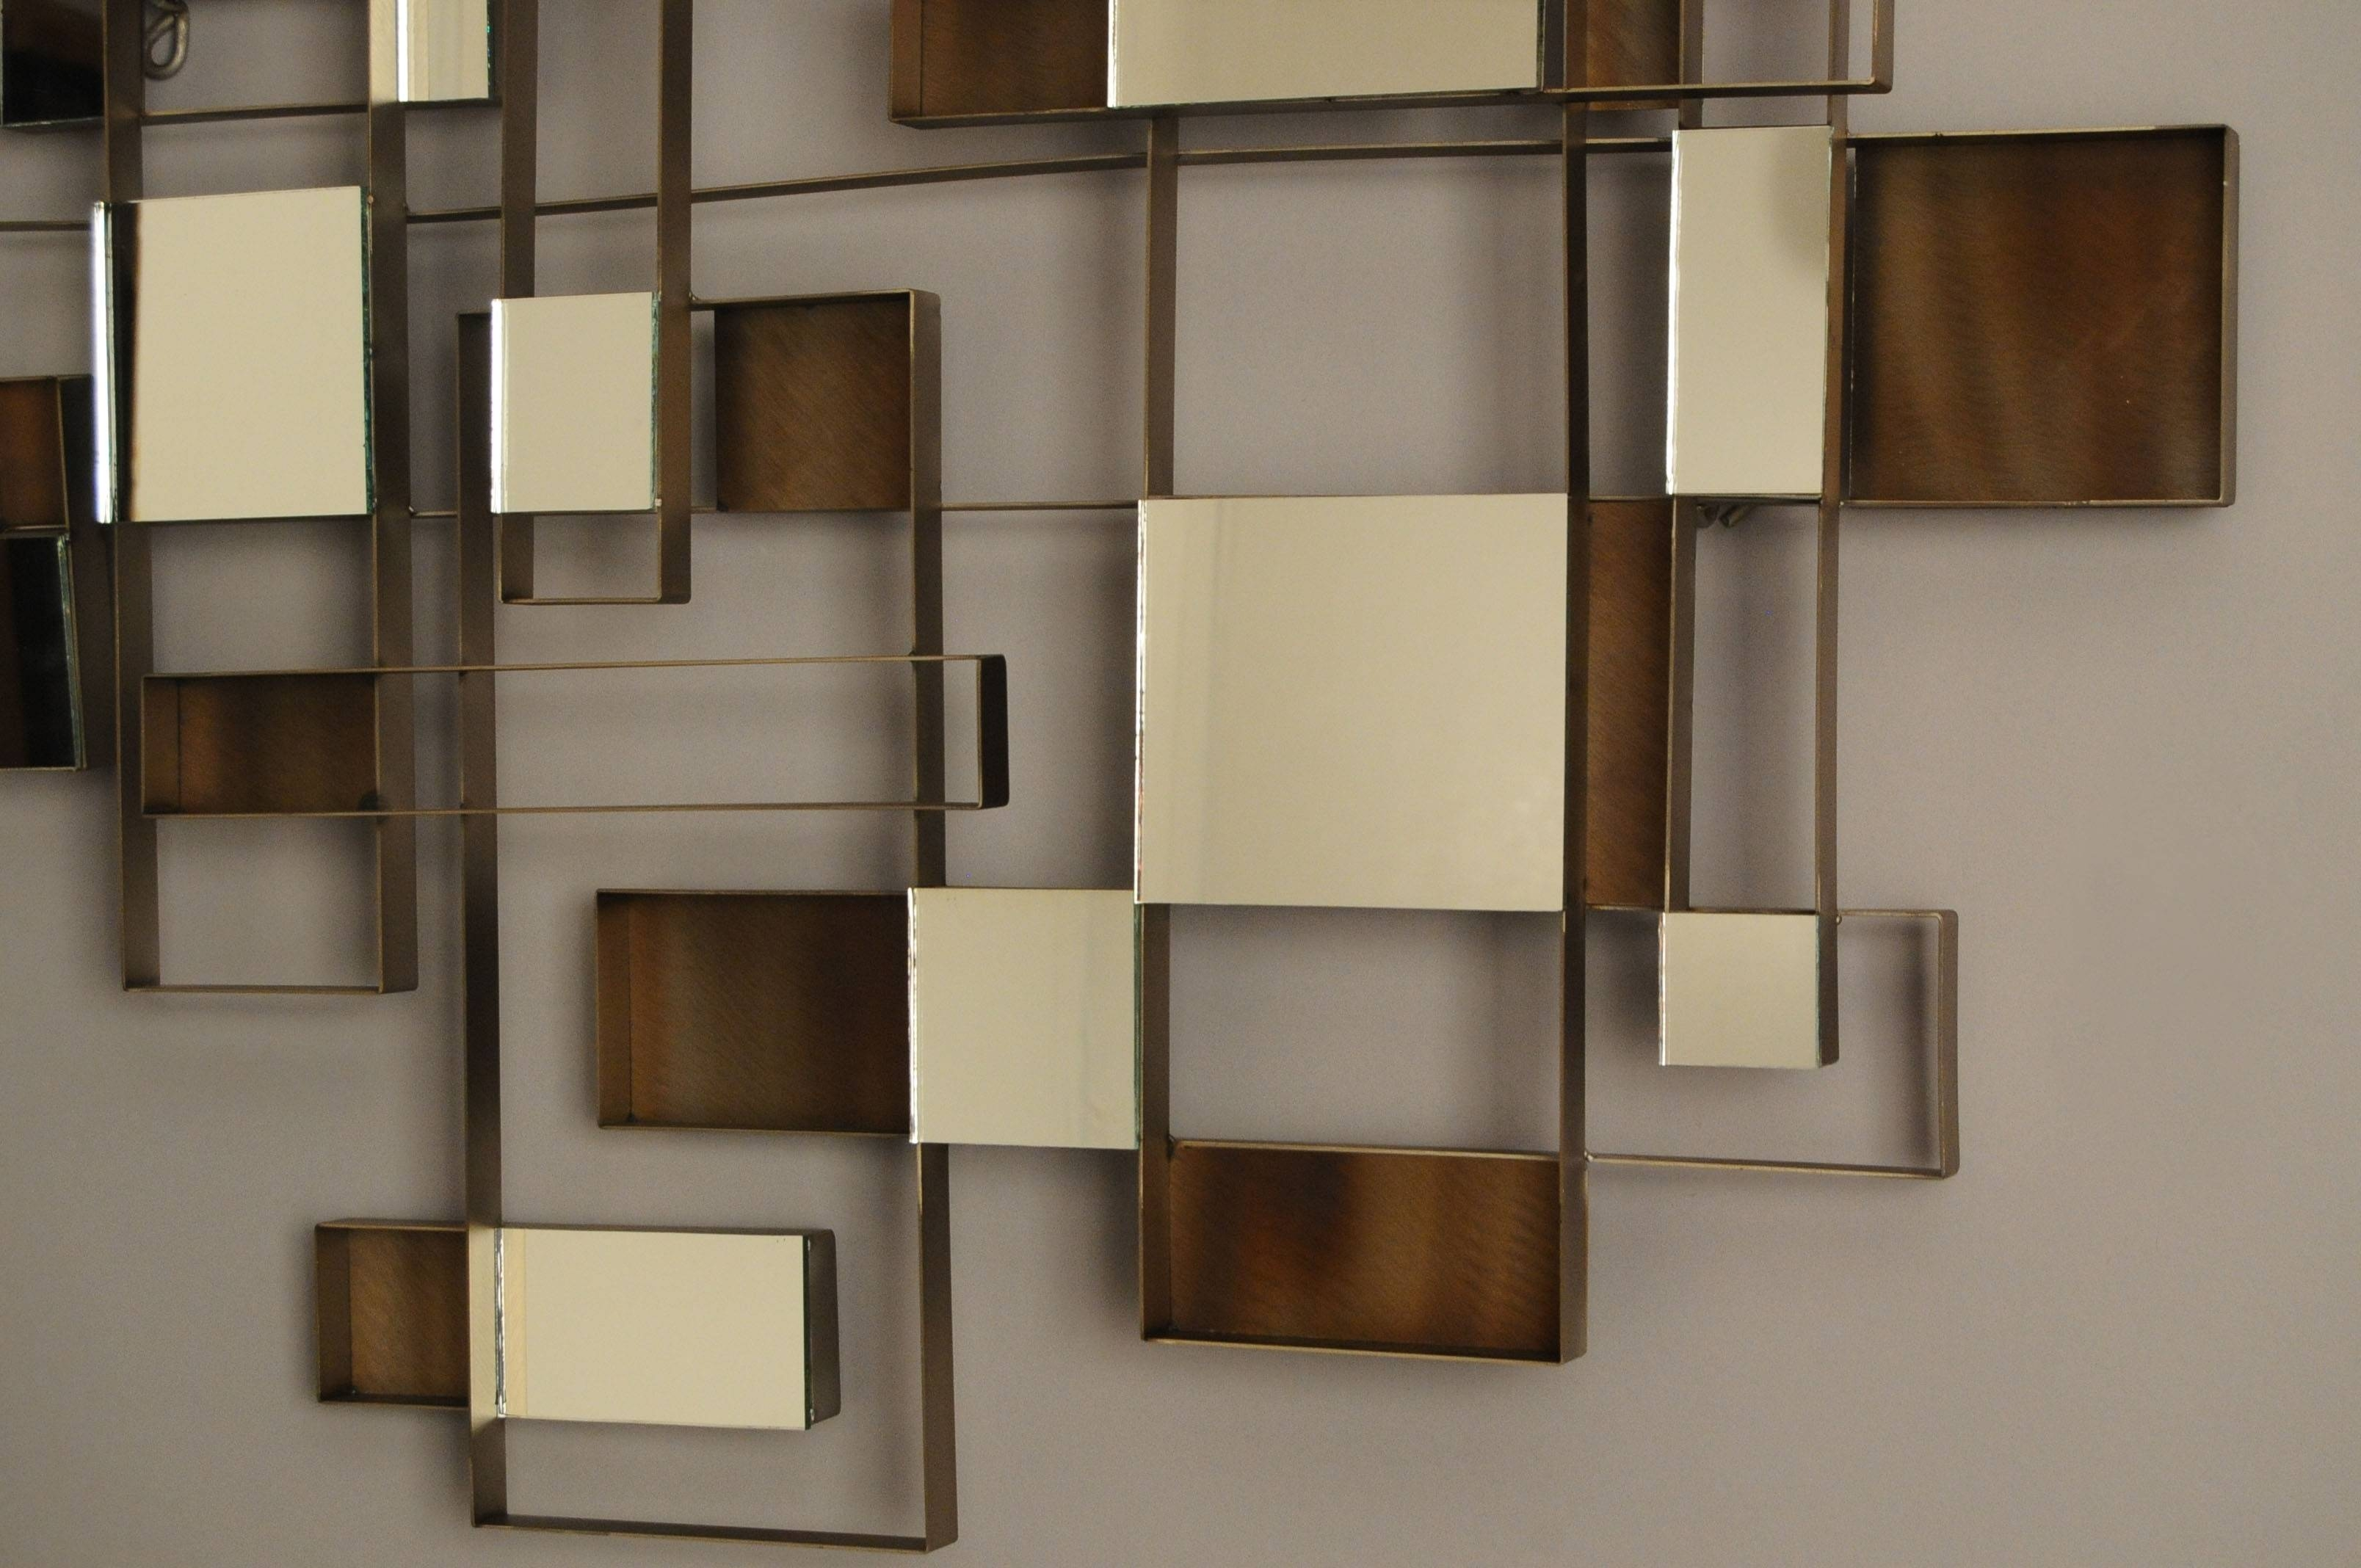 Metal Wall Art Mirrors • Bathroom Mirrors And Wall Mirrors Pertaining To Most Up To Date Metal Wall Art With Mirrors (View 7 of 20)